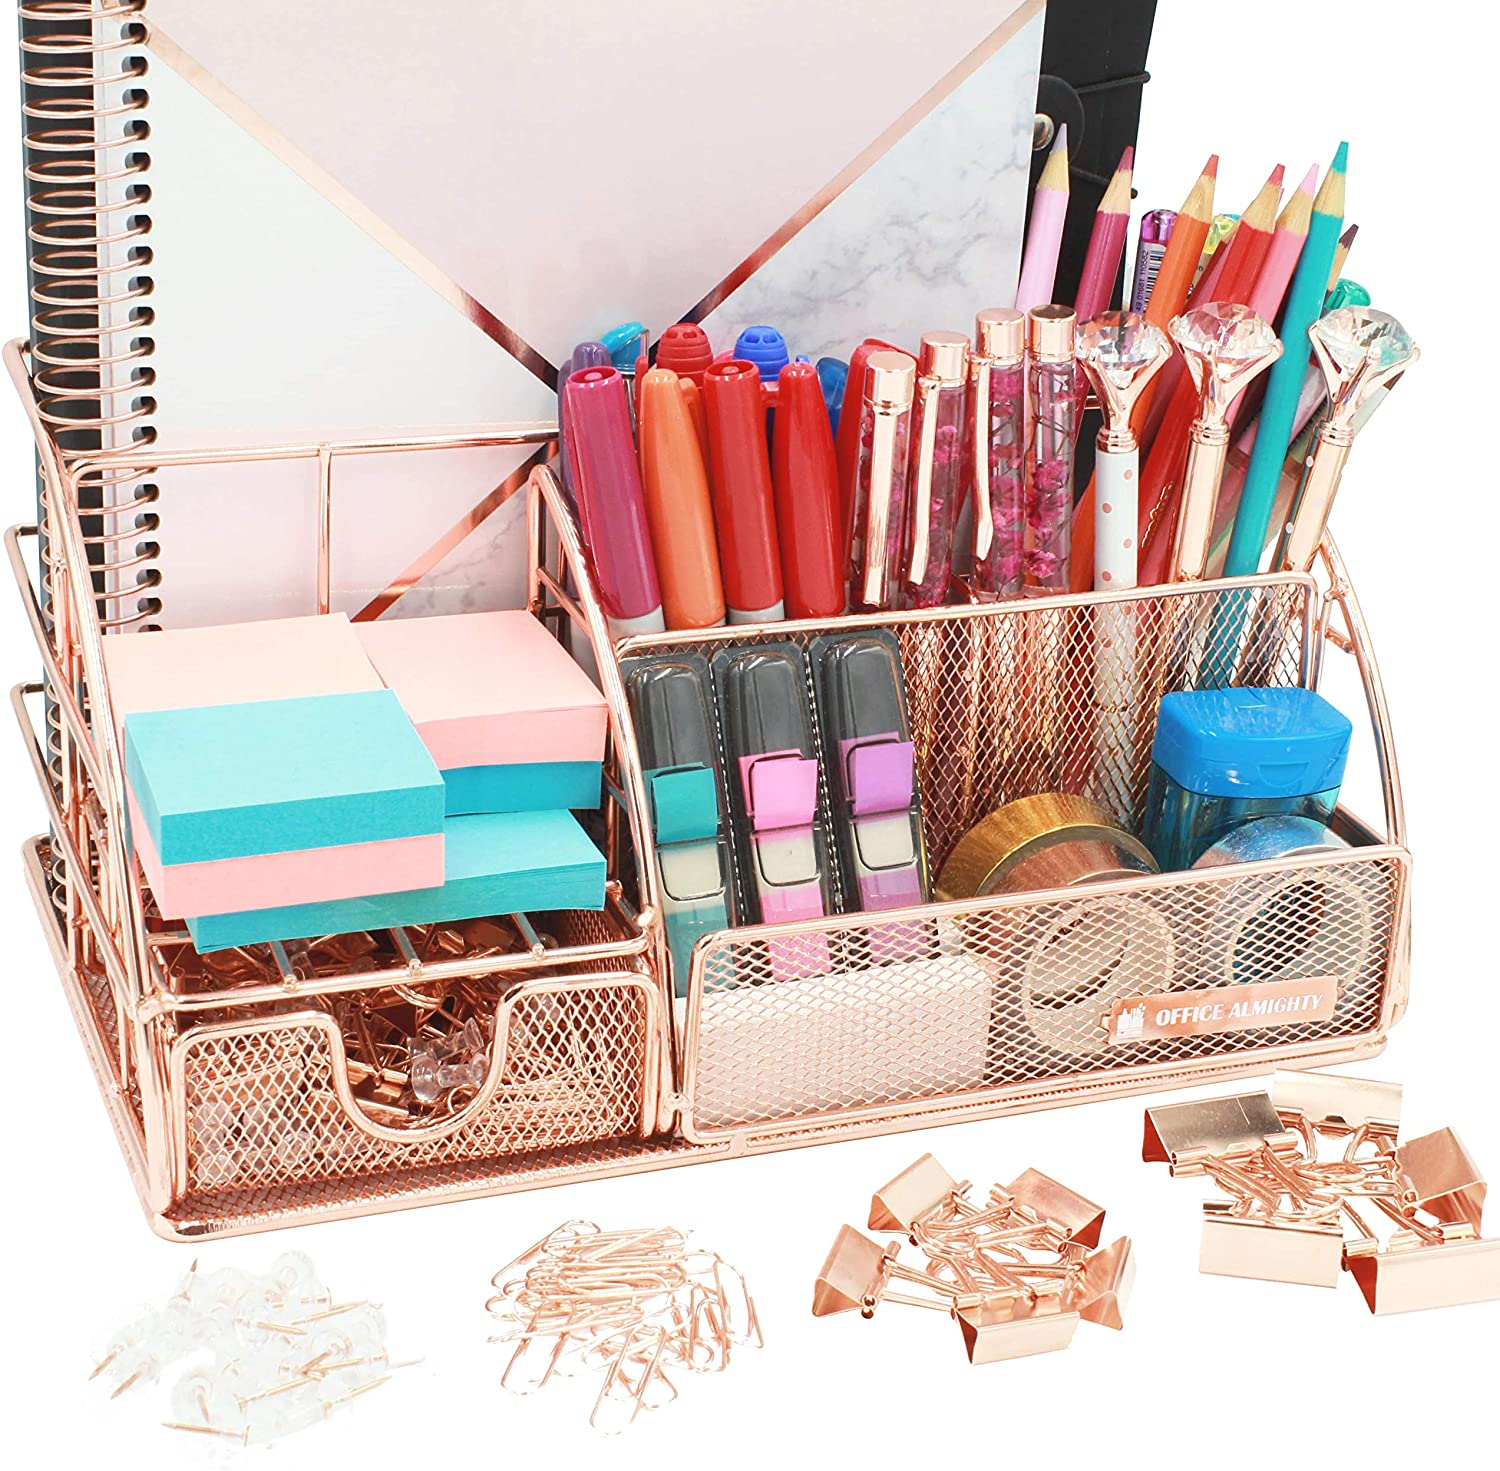 OFFICE ALMIGHTY Rose Gold Desk Organizer for Women: Exclusive Large 6 in 1 Mesh Metal Supplies Organizer with Pen Holders, Folder Holder & Accessories Drawer + BONUS 171 Clips Set w/ a Plastic Box